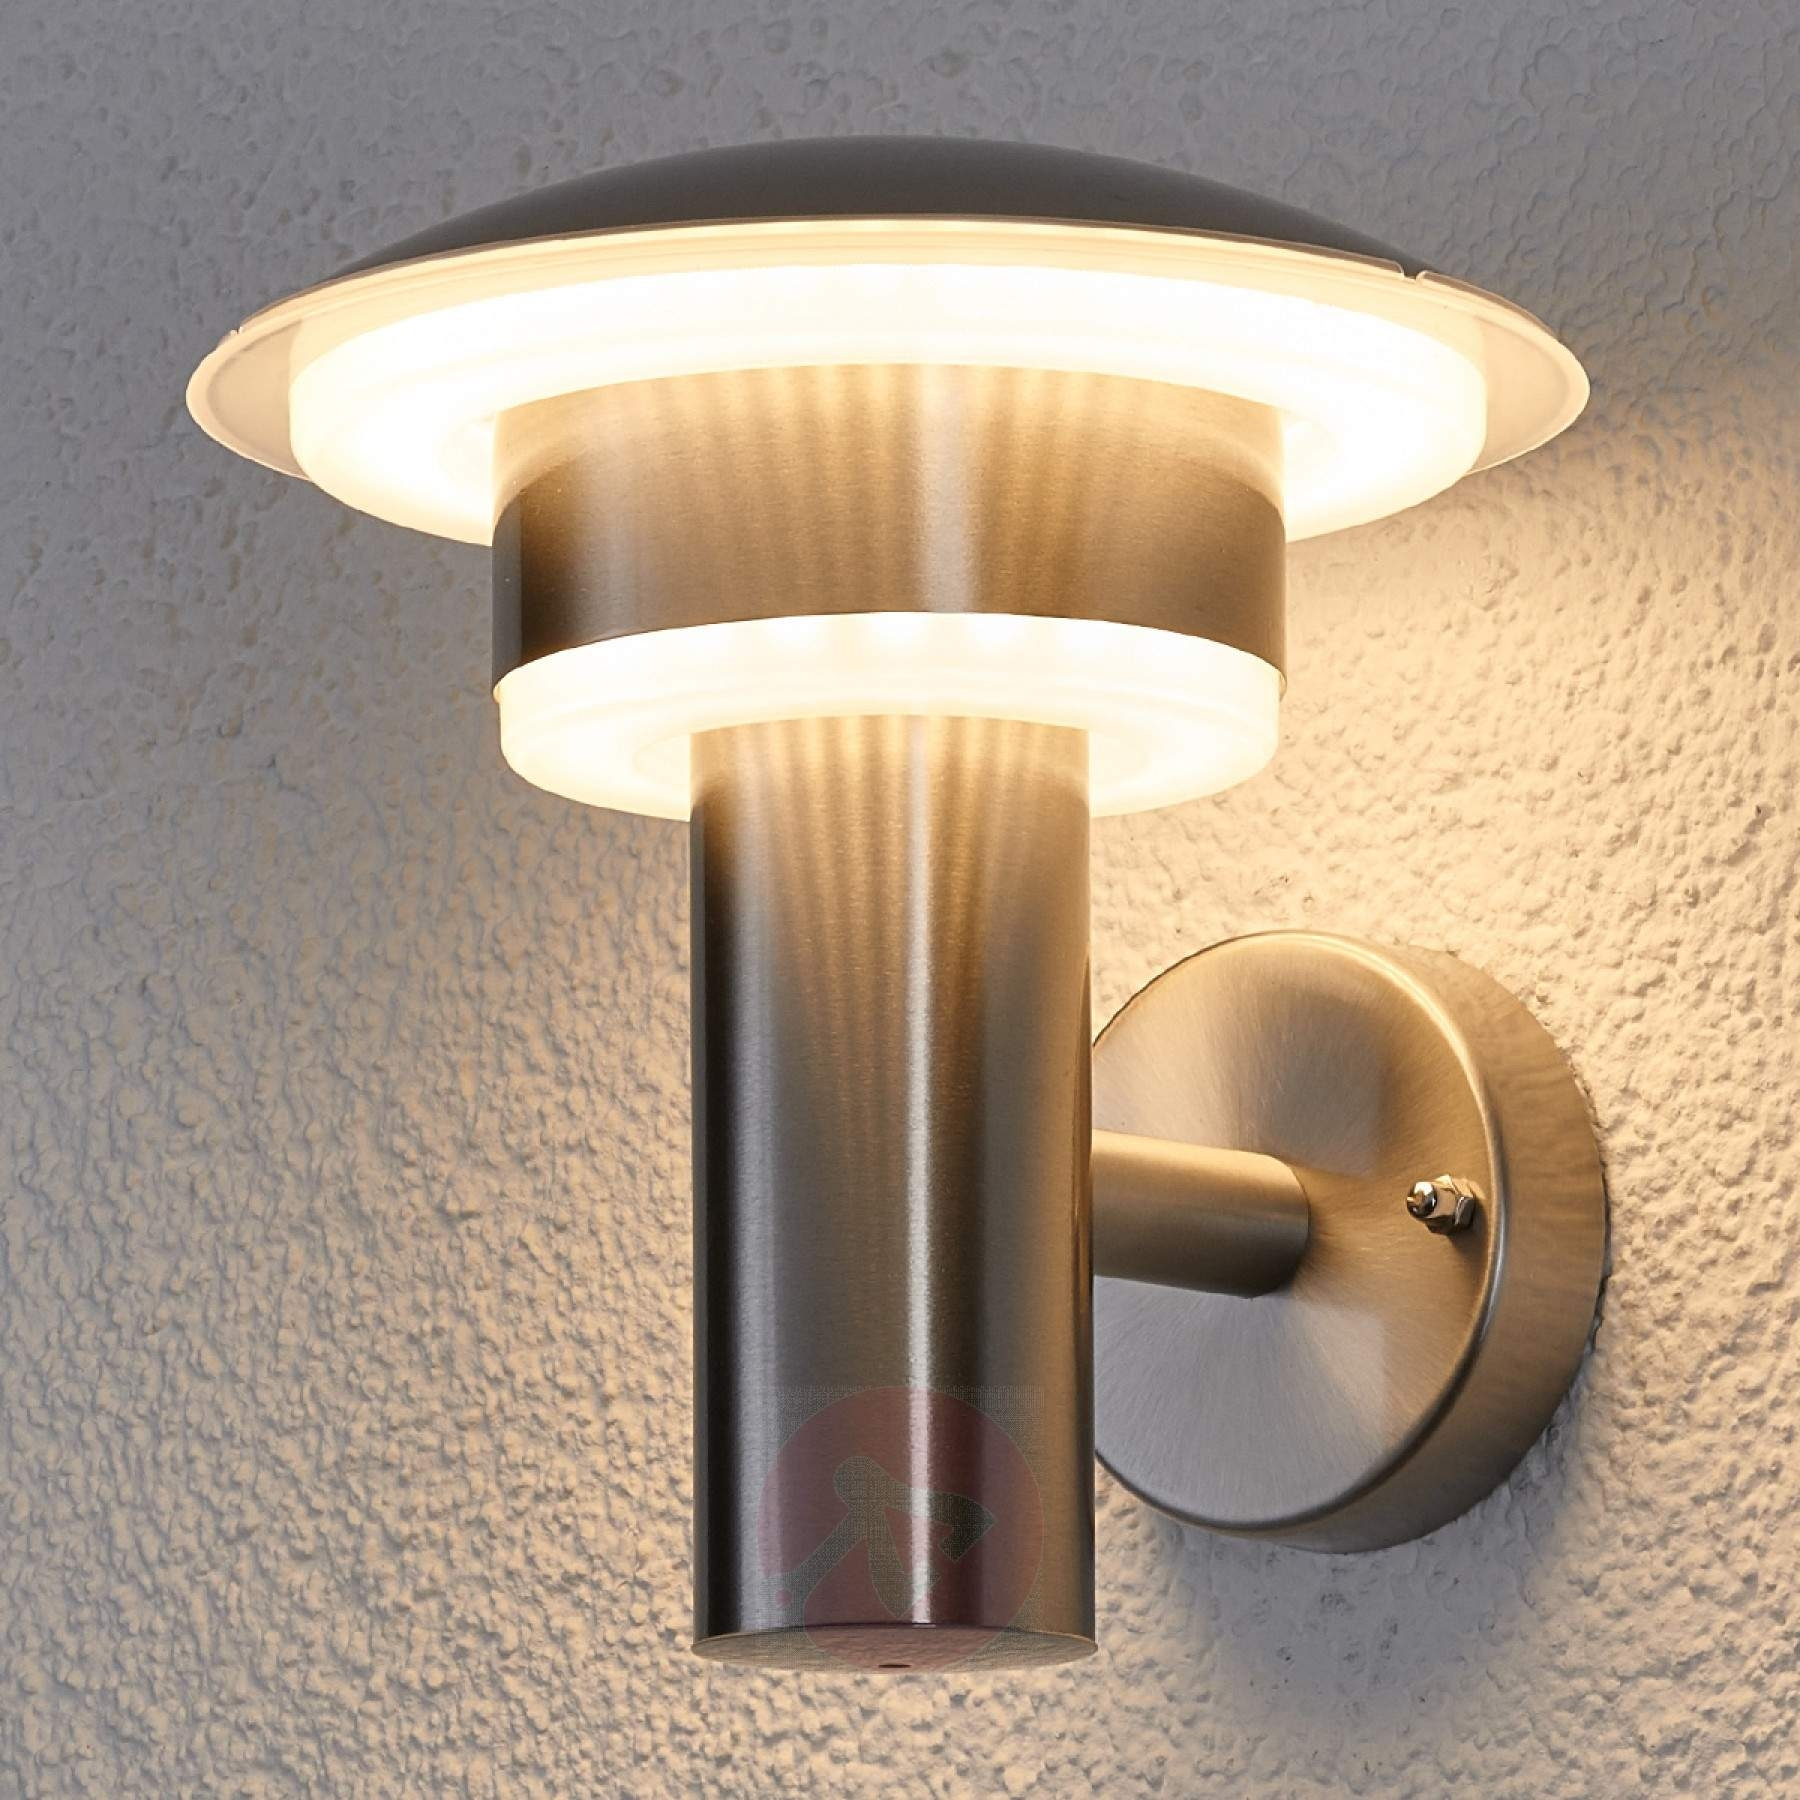 Buy Stainless Steel Outdoor Wall Lights From Lights.co (#4 of 15)